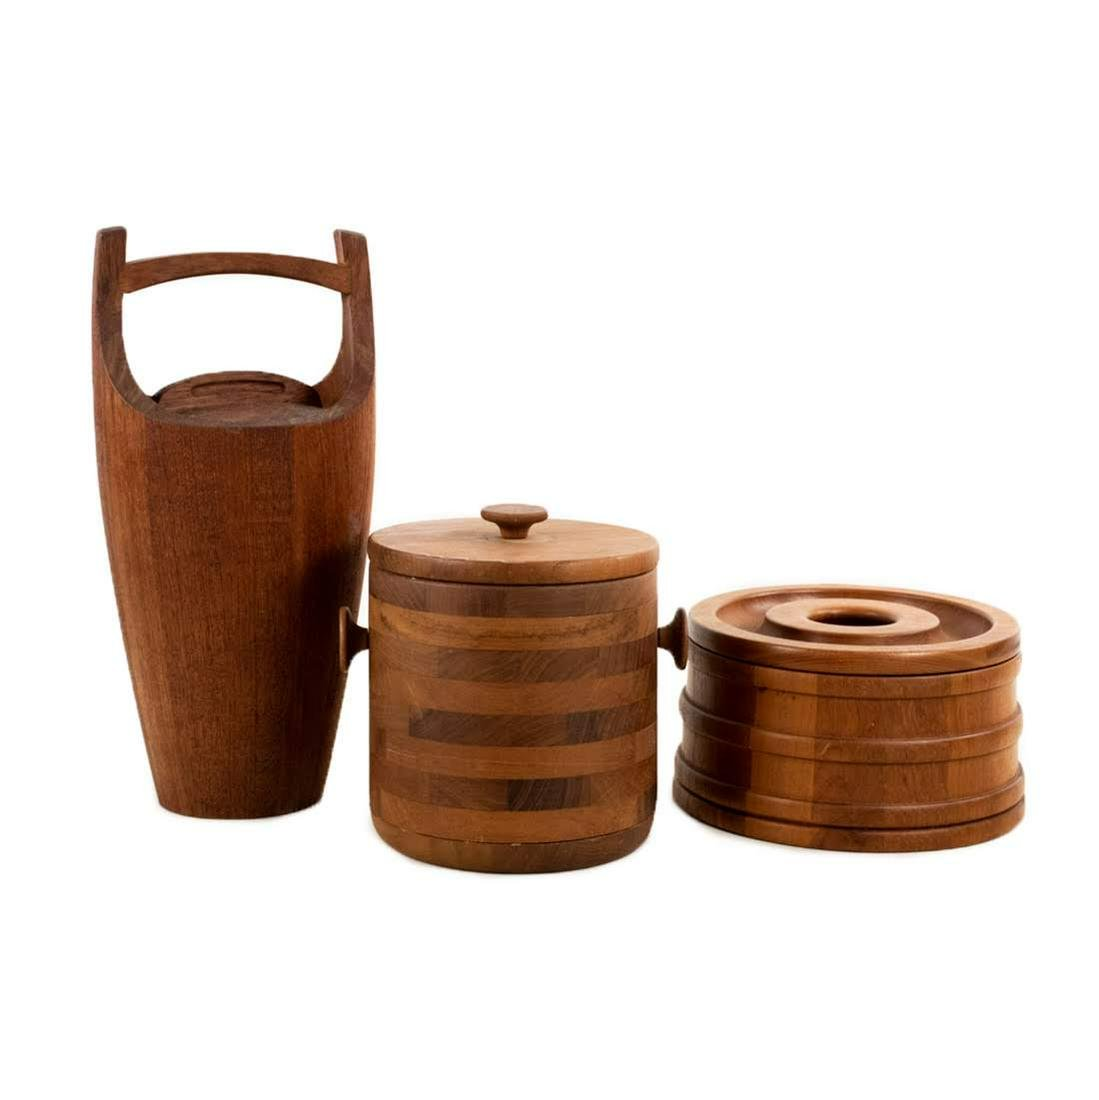 Dansk Teak and Baribocraft Ice Buckets